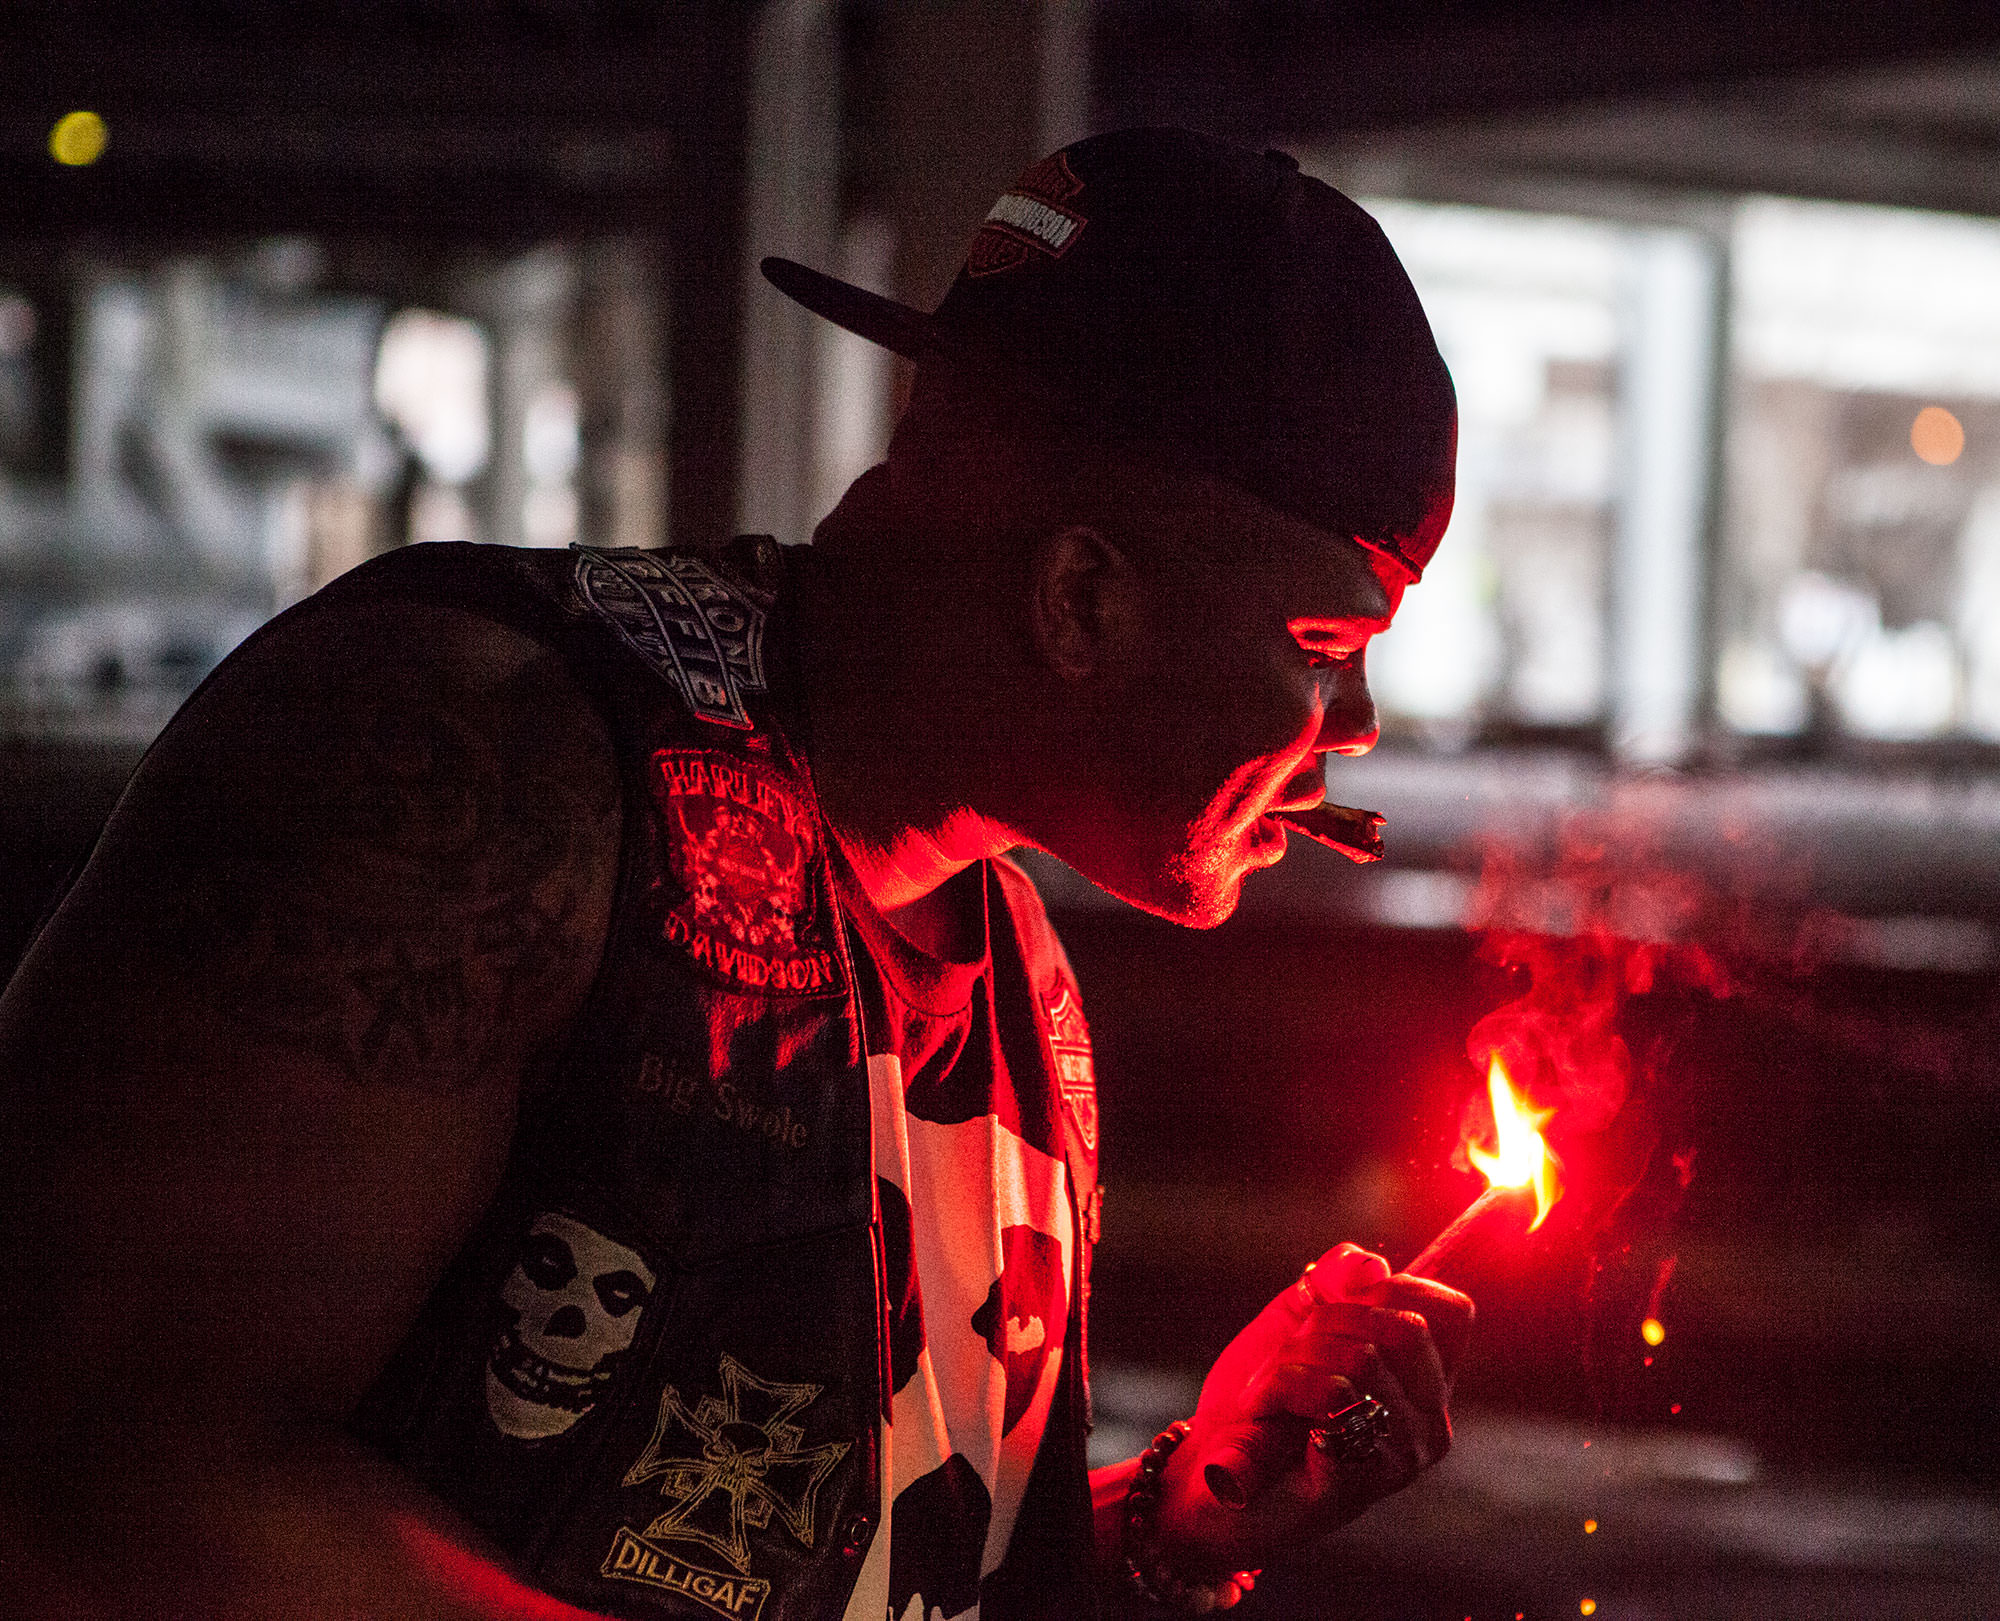 Big Swole lighting up his cigar during a Harley-Davidson photoshoot.